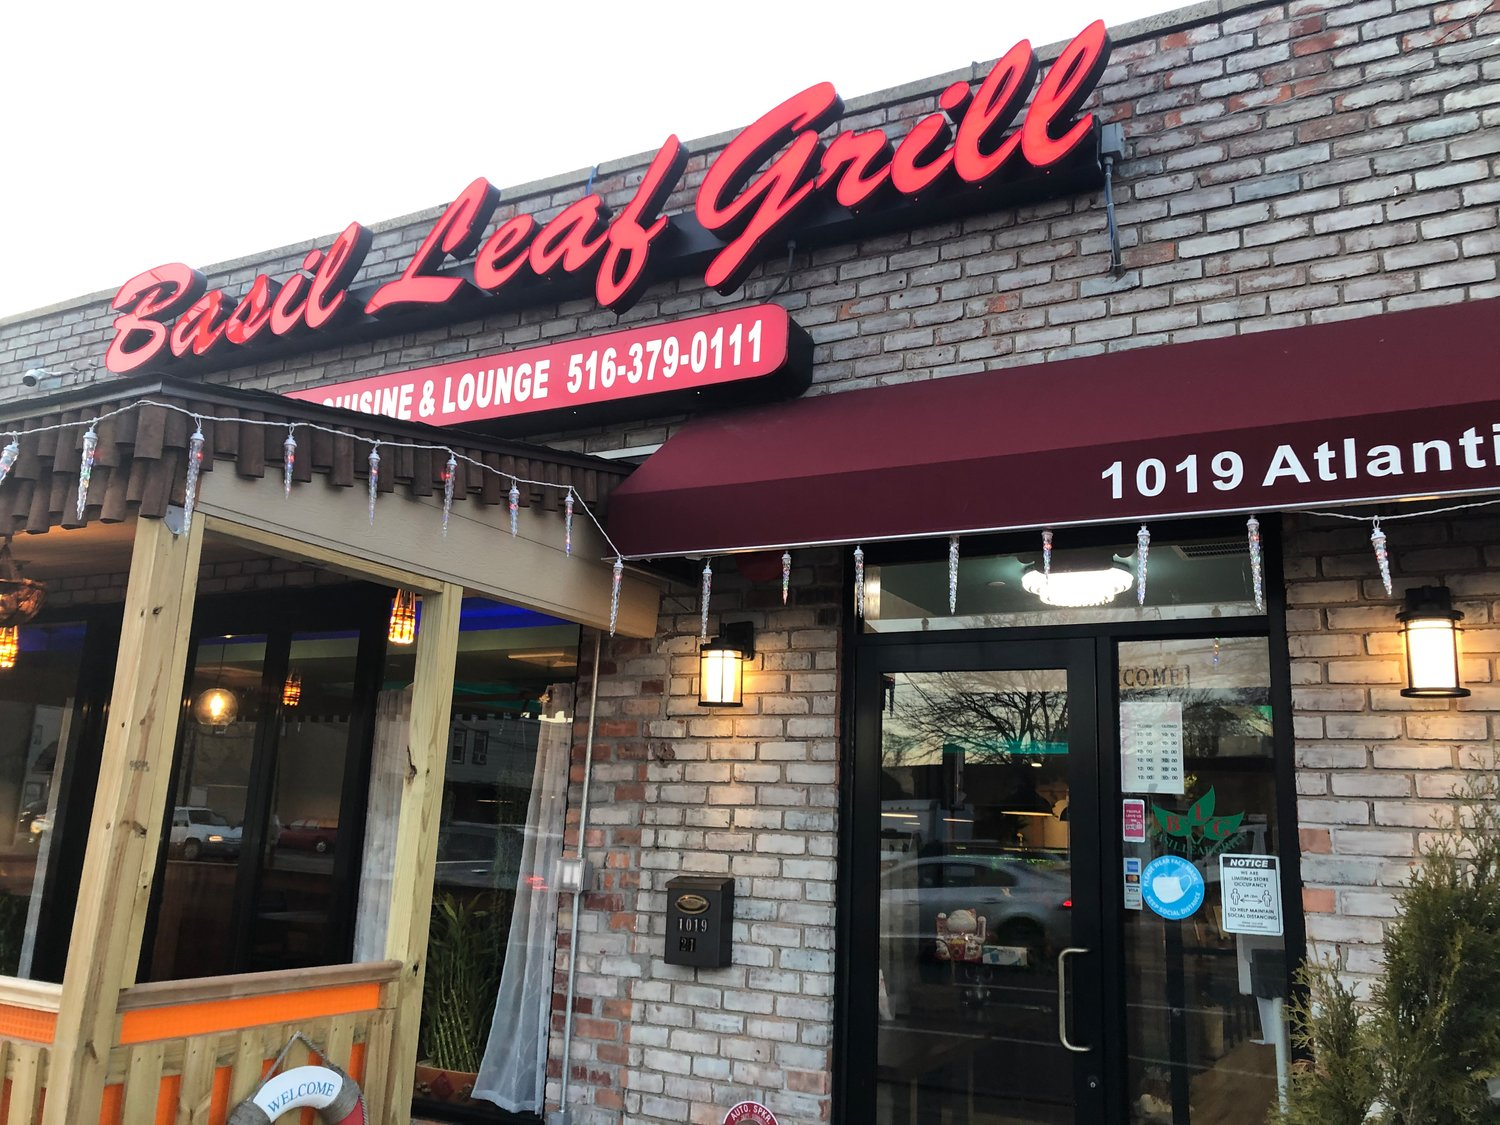 Basil Leaf Grill Cuisine and Lounge in Baldwin opened last March 5, just as the pandemic was spreading.